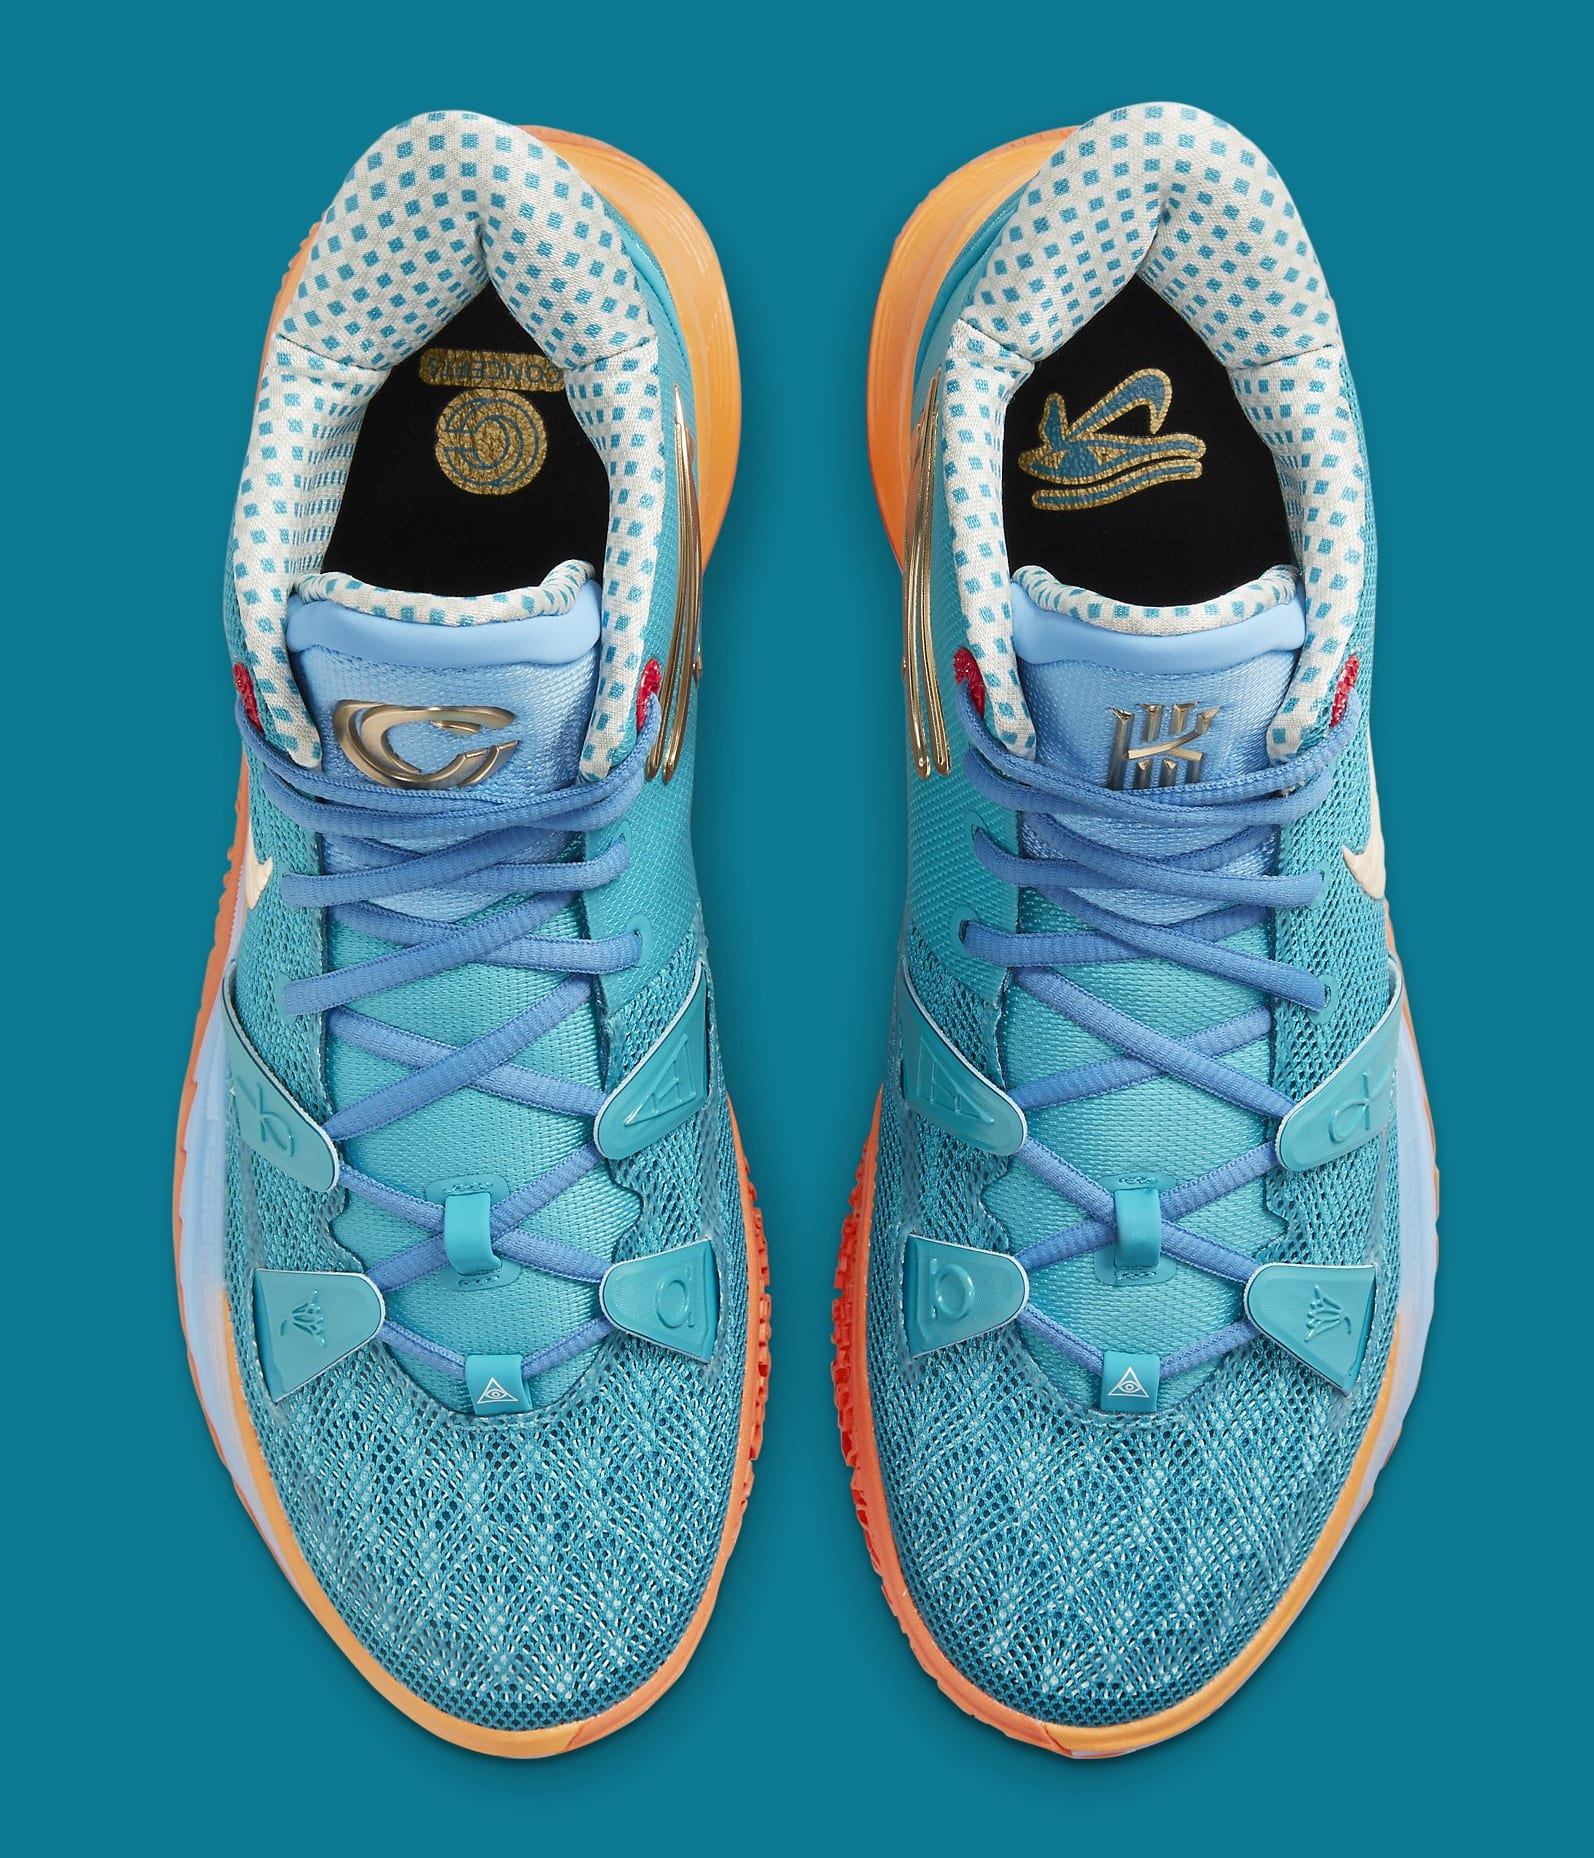 Concepts x Nike Kyrie 7 CT1137-900 Top